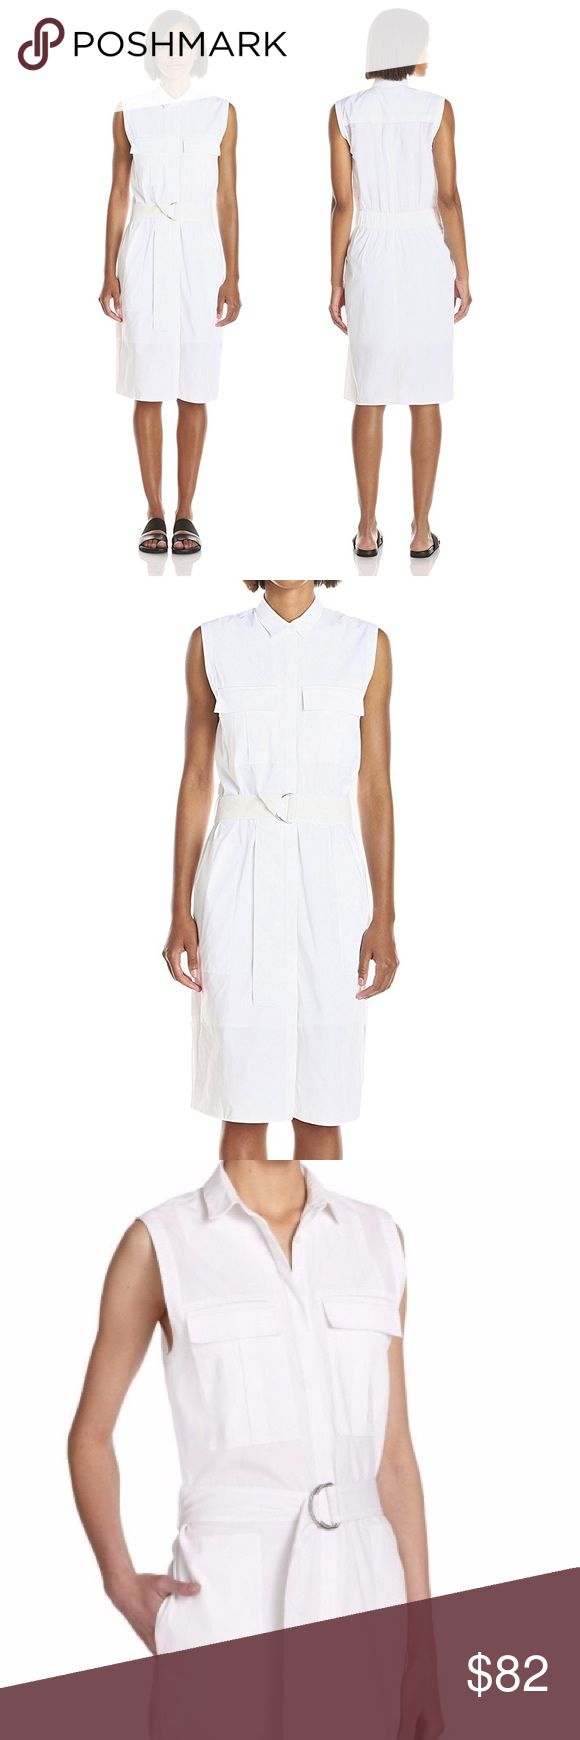 Helmut Lang Washed Bellow Poplin Shirt Dress White HELMUT LANG OPTIC WHITE WASHED BELLOW POPLIN BELTED SHIRT DRESS. NWT.  Spread collar; placket front; sleeveless. Bellow pockets at chest; patch pockets at hip. Belted, elasticized waist. Side slits at hem. Dry clean Cotton/spandex. Helmut Lang Dresses